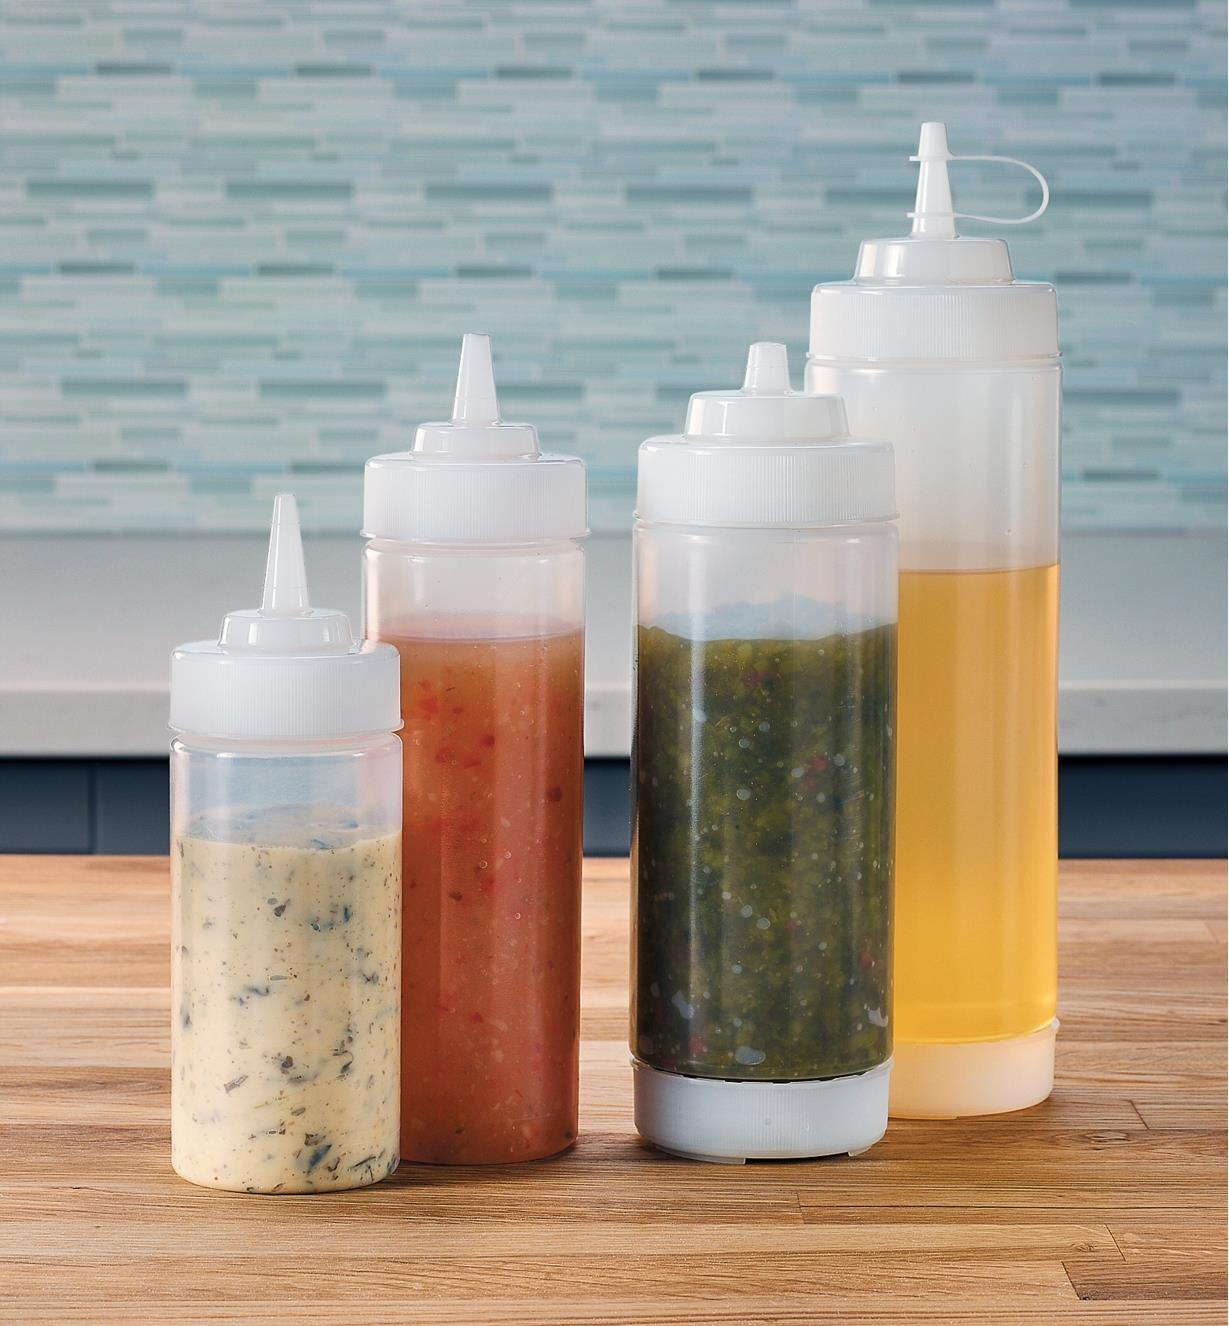 Four squeeze bottles filled with condiments